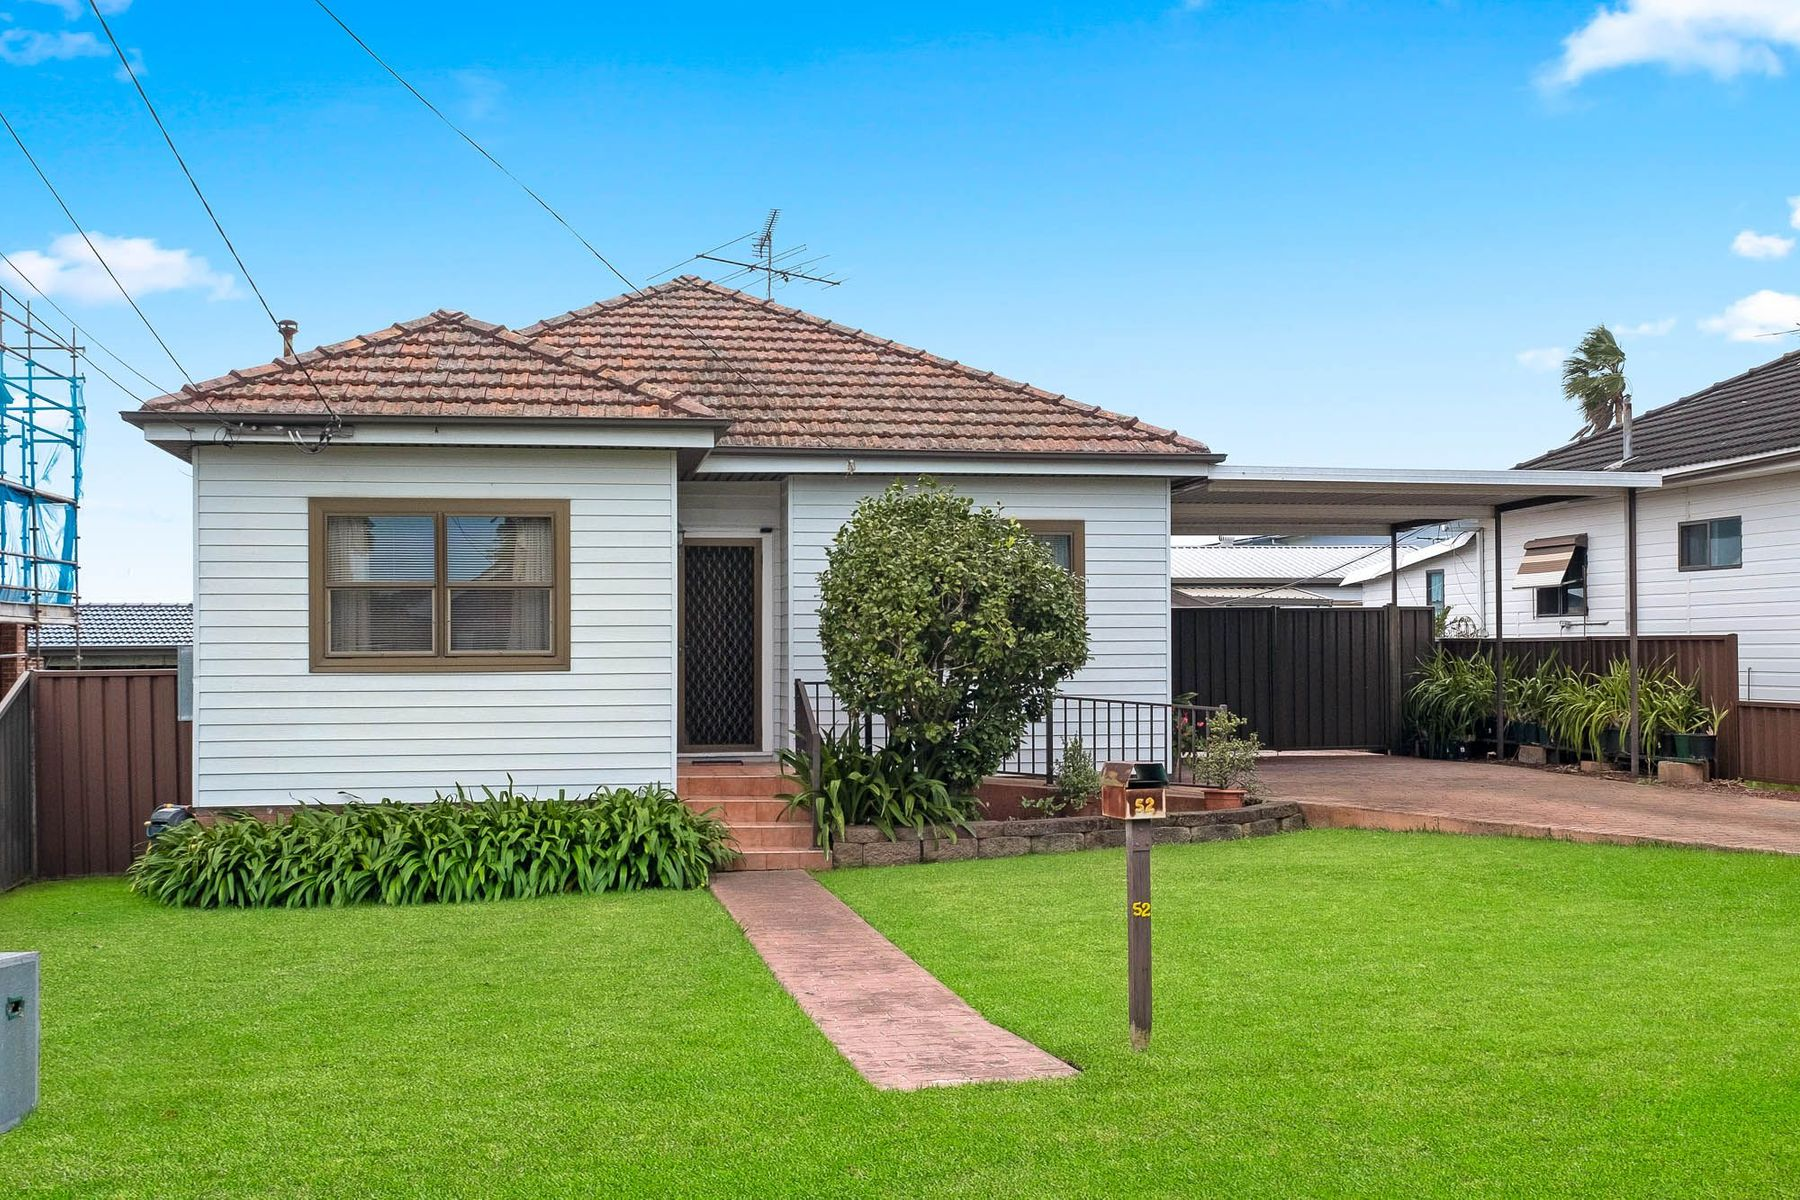 52 Edna Avenue, Merrylands, NSW 2160